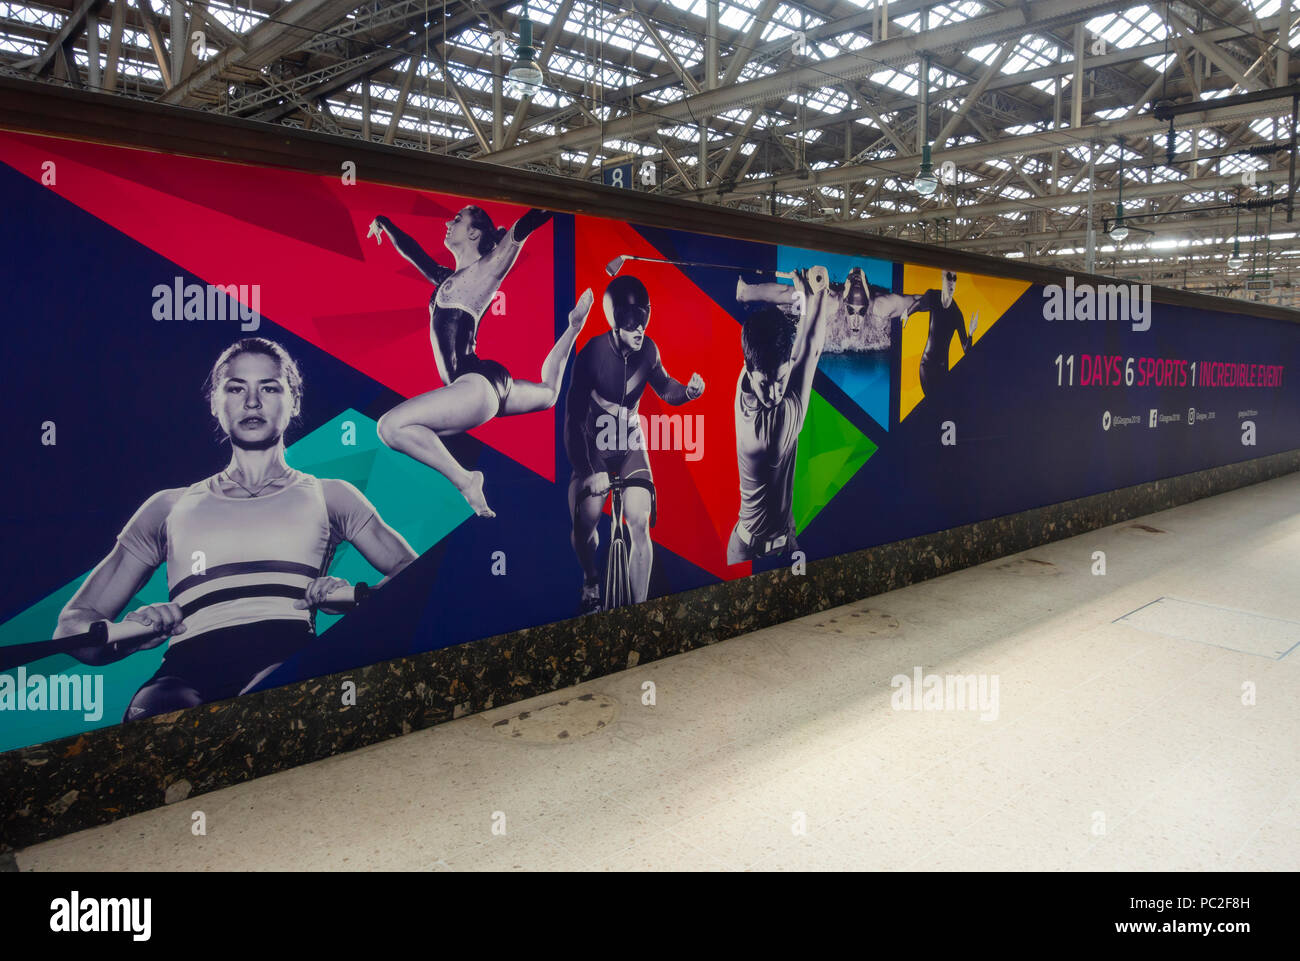 Long banner in Glasgow Central Station promoting the European Championships, Glasgow 2018, a multi-sport event hosted in the city. - Stock Image